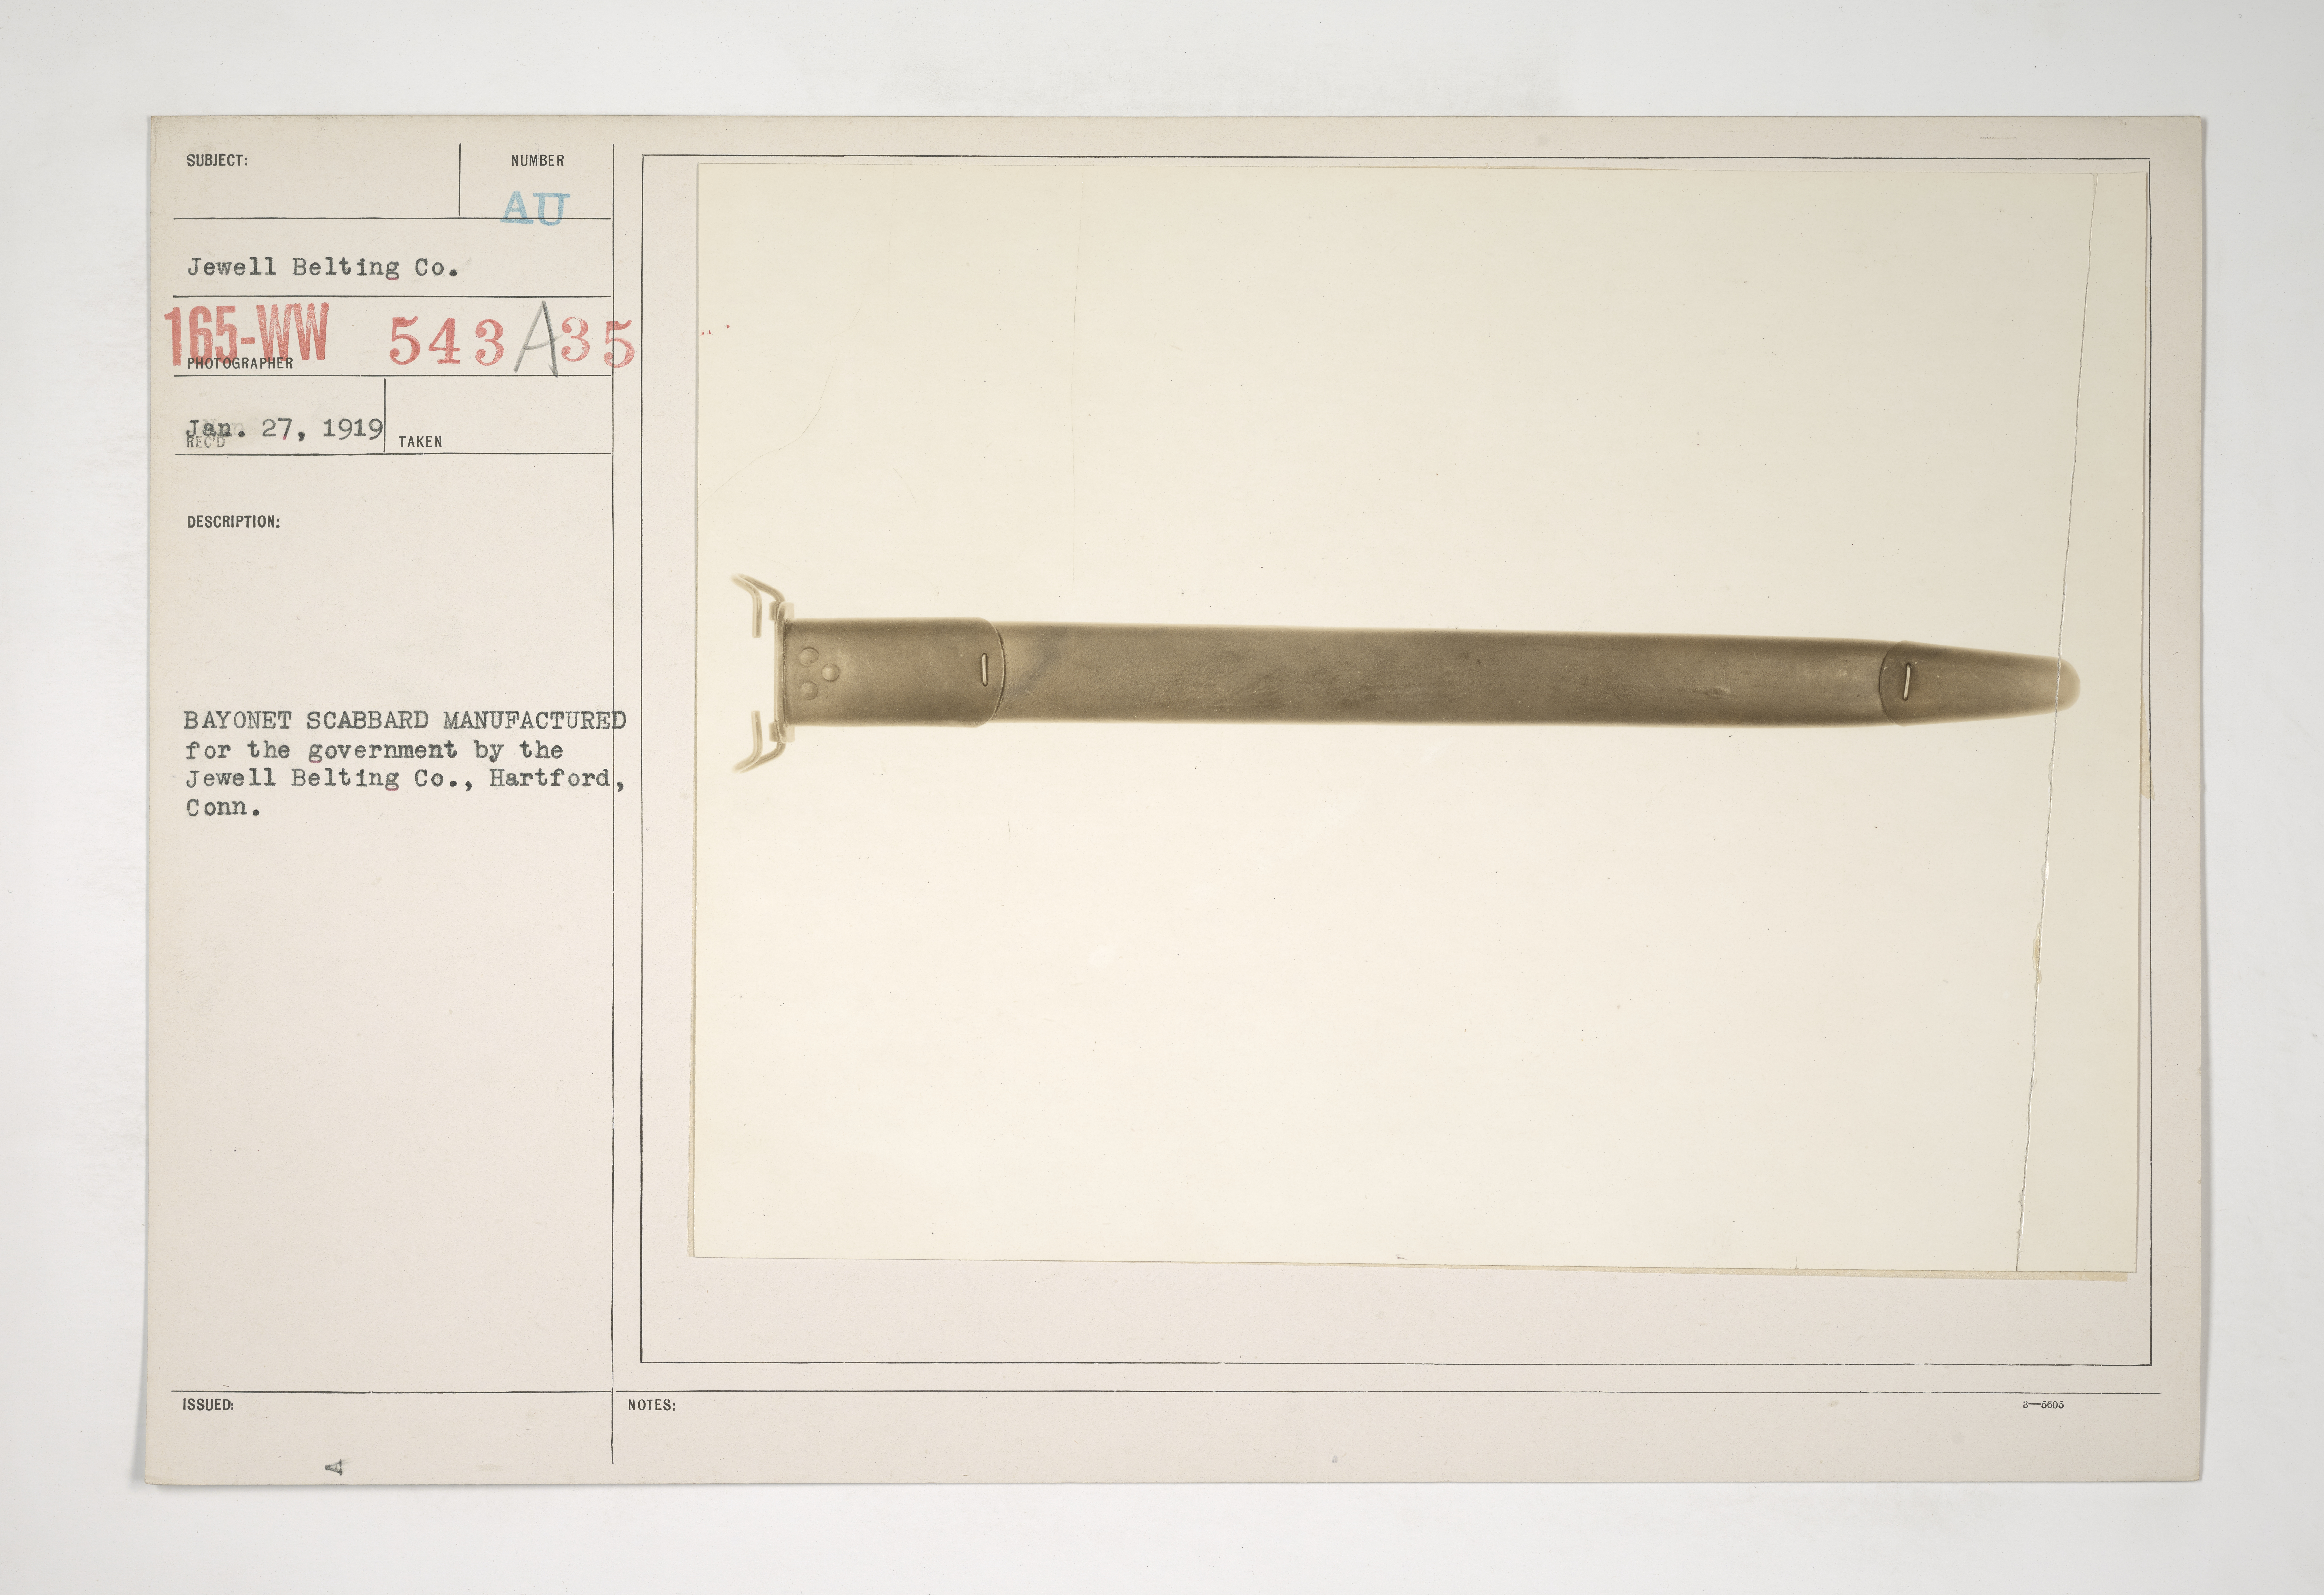 Uniforms and Equipment - Pouches and Scabbards [165-WW-543A-35]